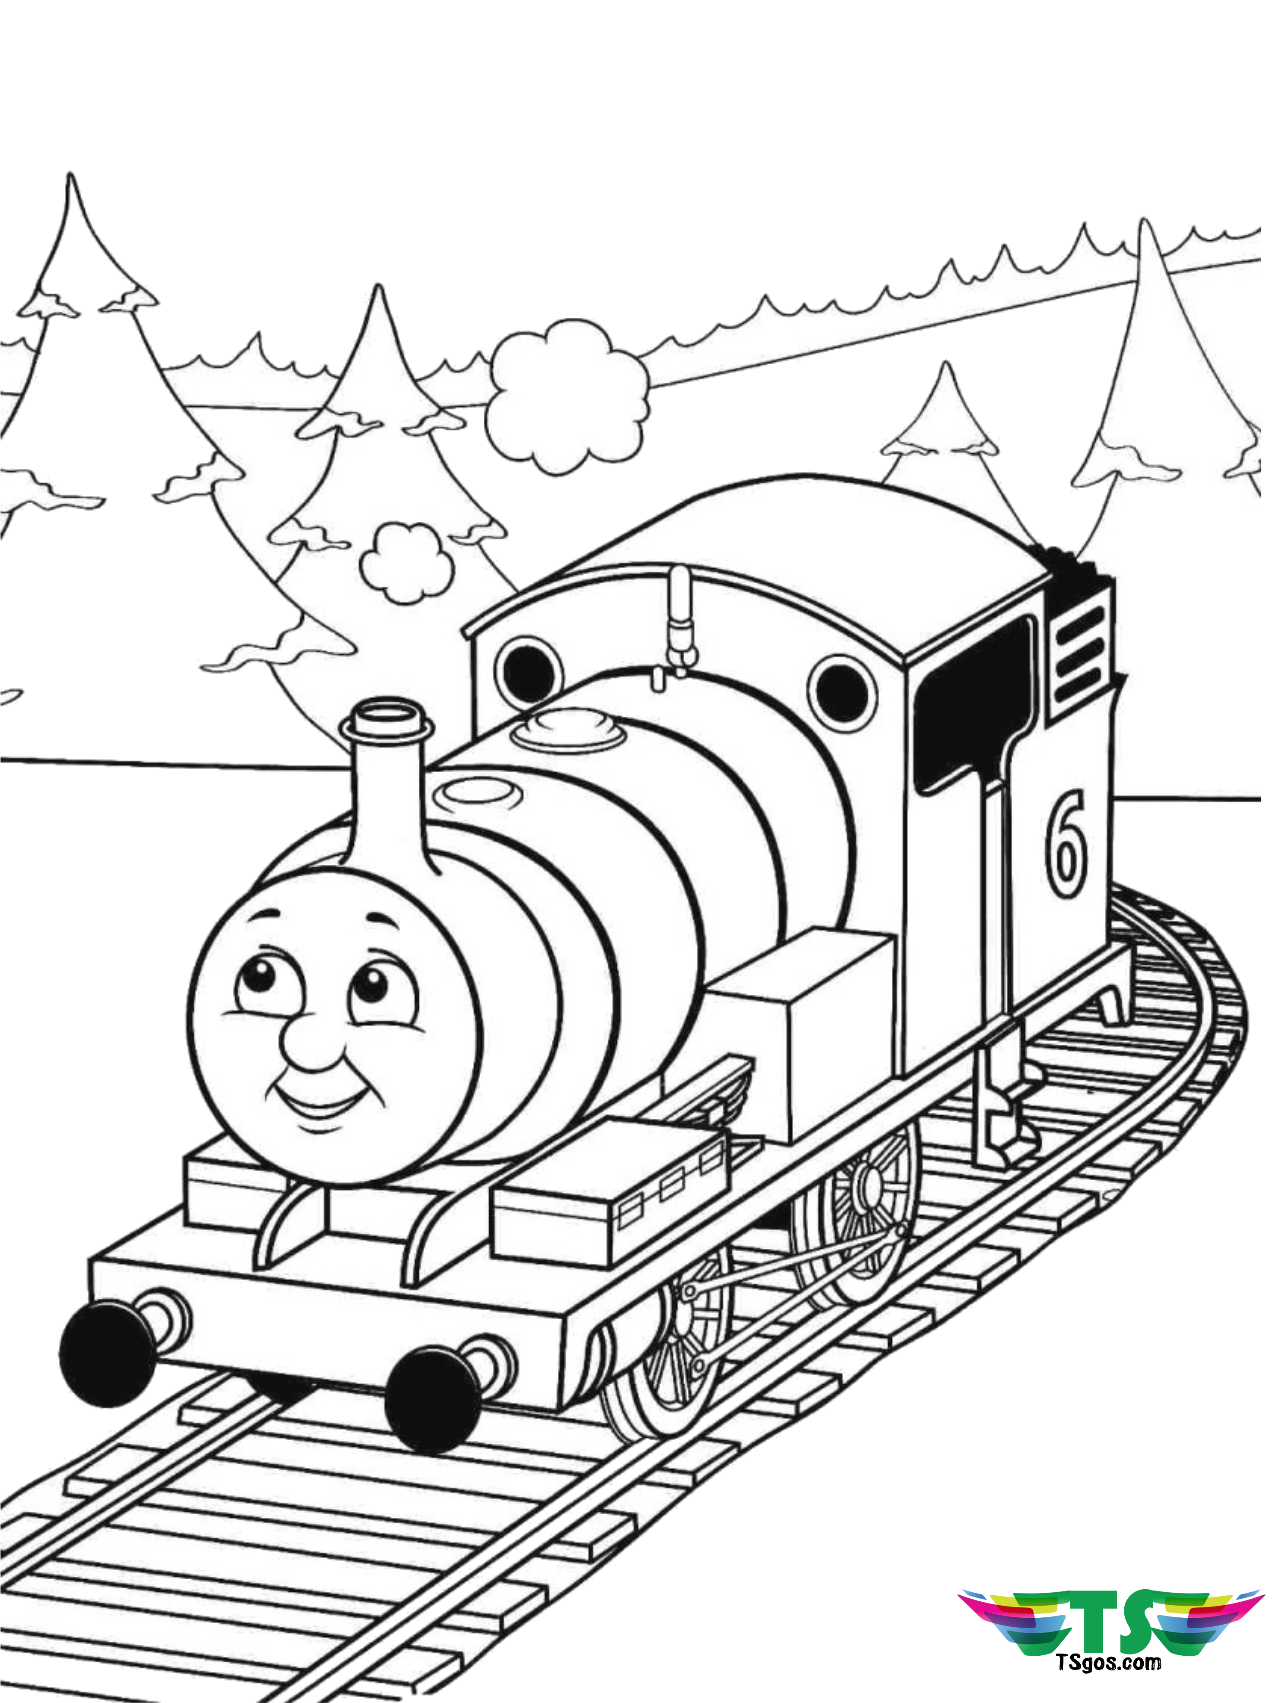 train coloring image free printable train coloring pages for kids cool2bkids train image coloring